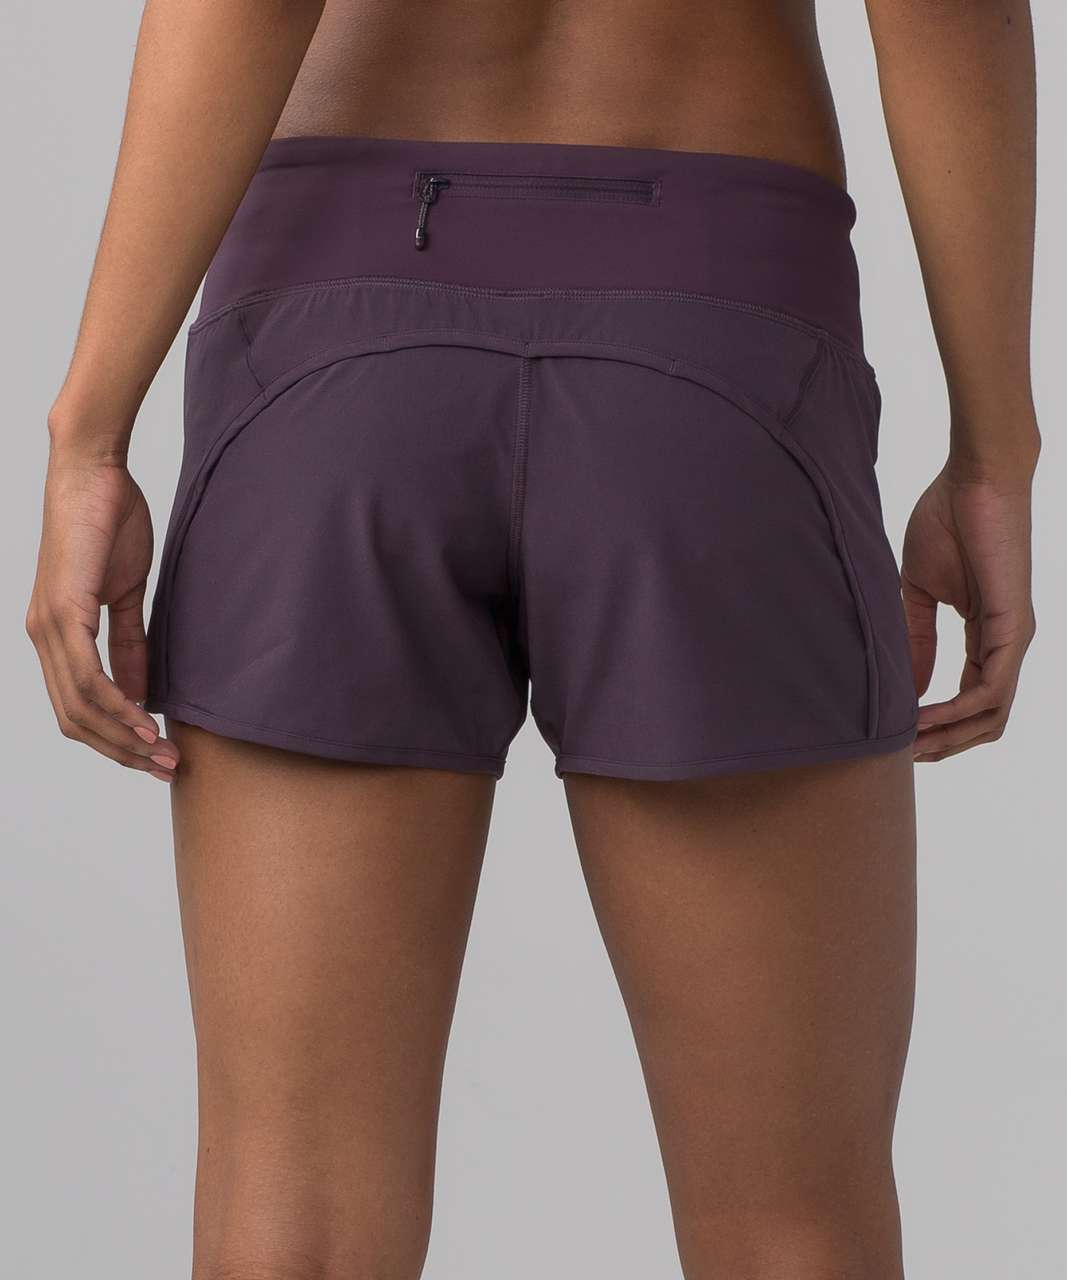 "Lululemon Run Times Short (4-way Stretch 4"") - Black Currant"